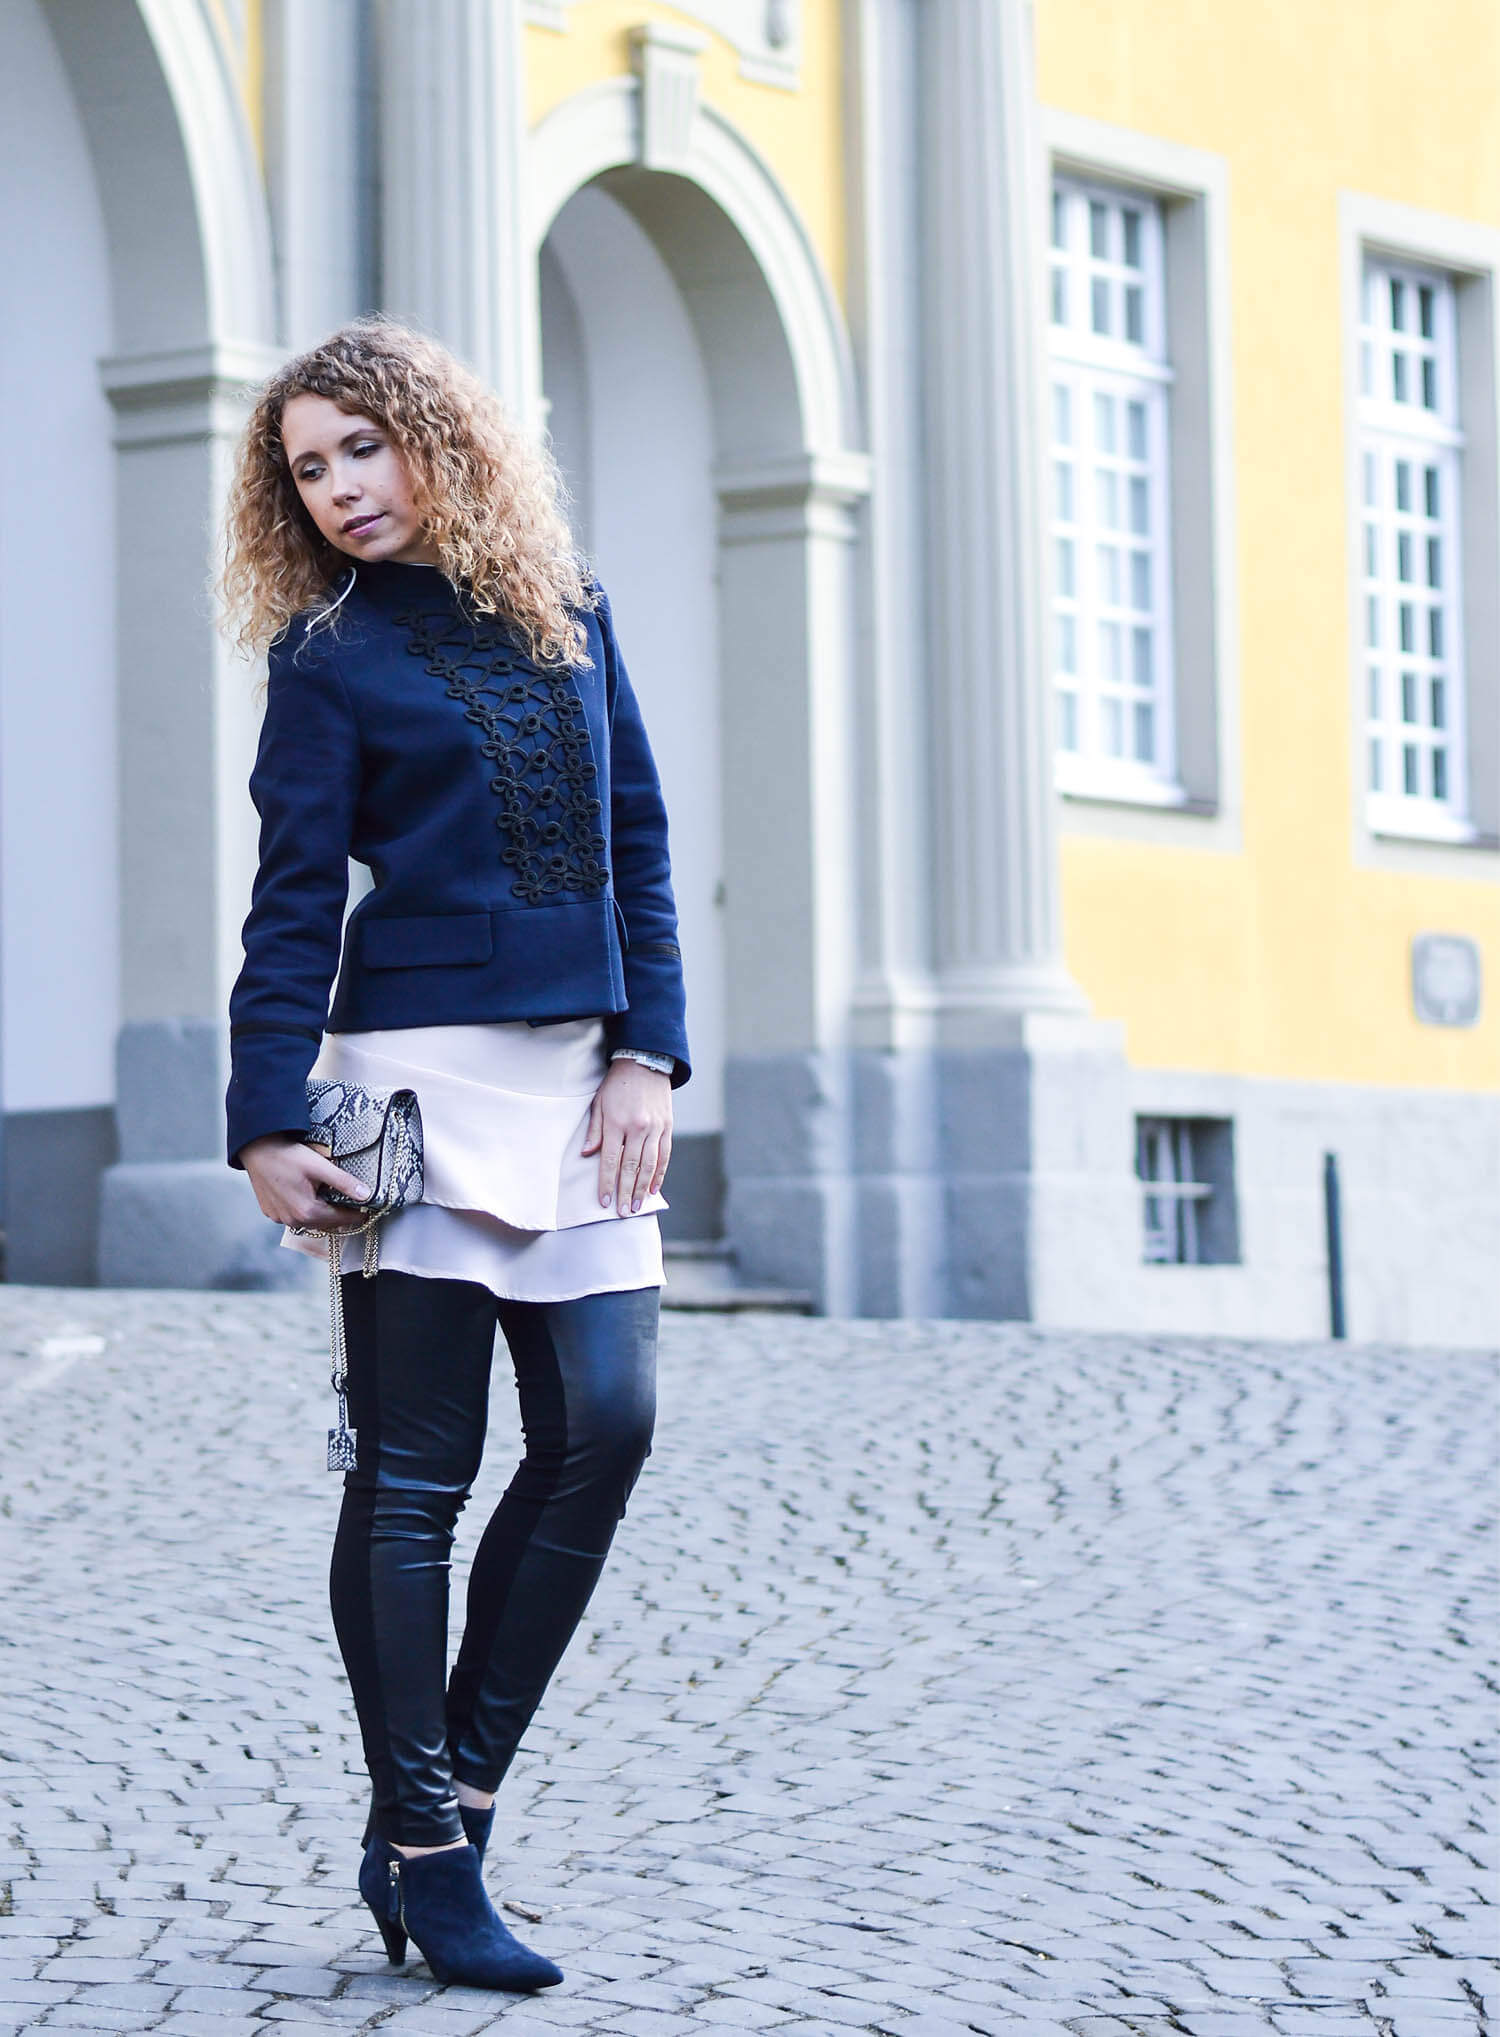 Kationette-fashionblog-Outfit-Military-Jacket-Ruffles-volants-FakeLeather-streetstyle